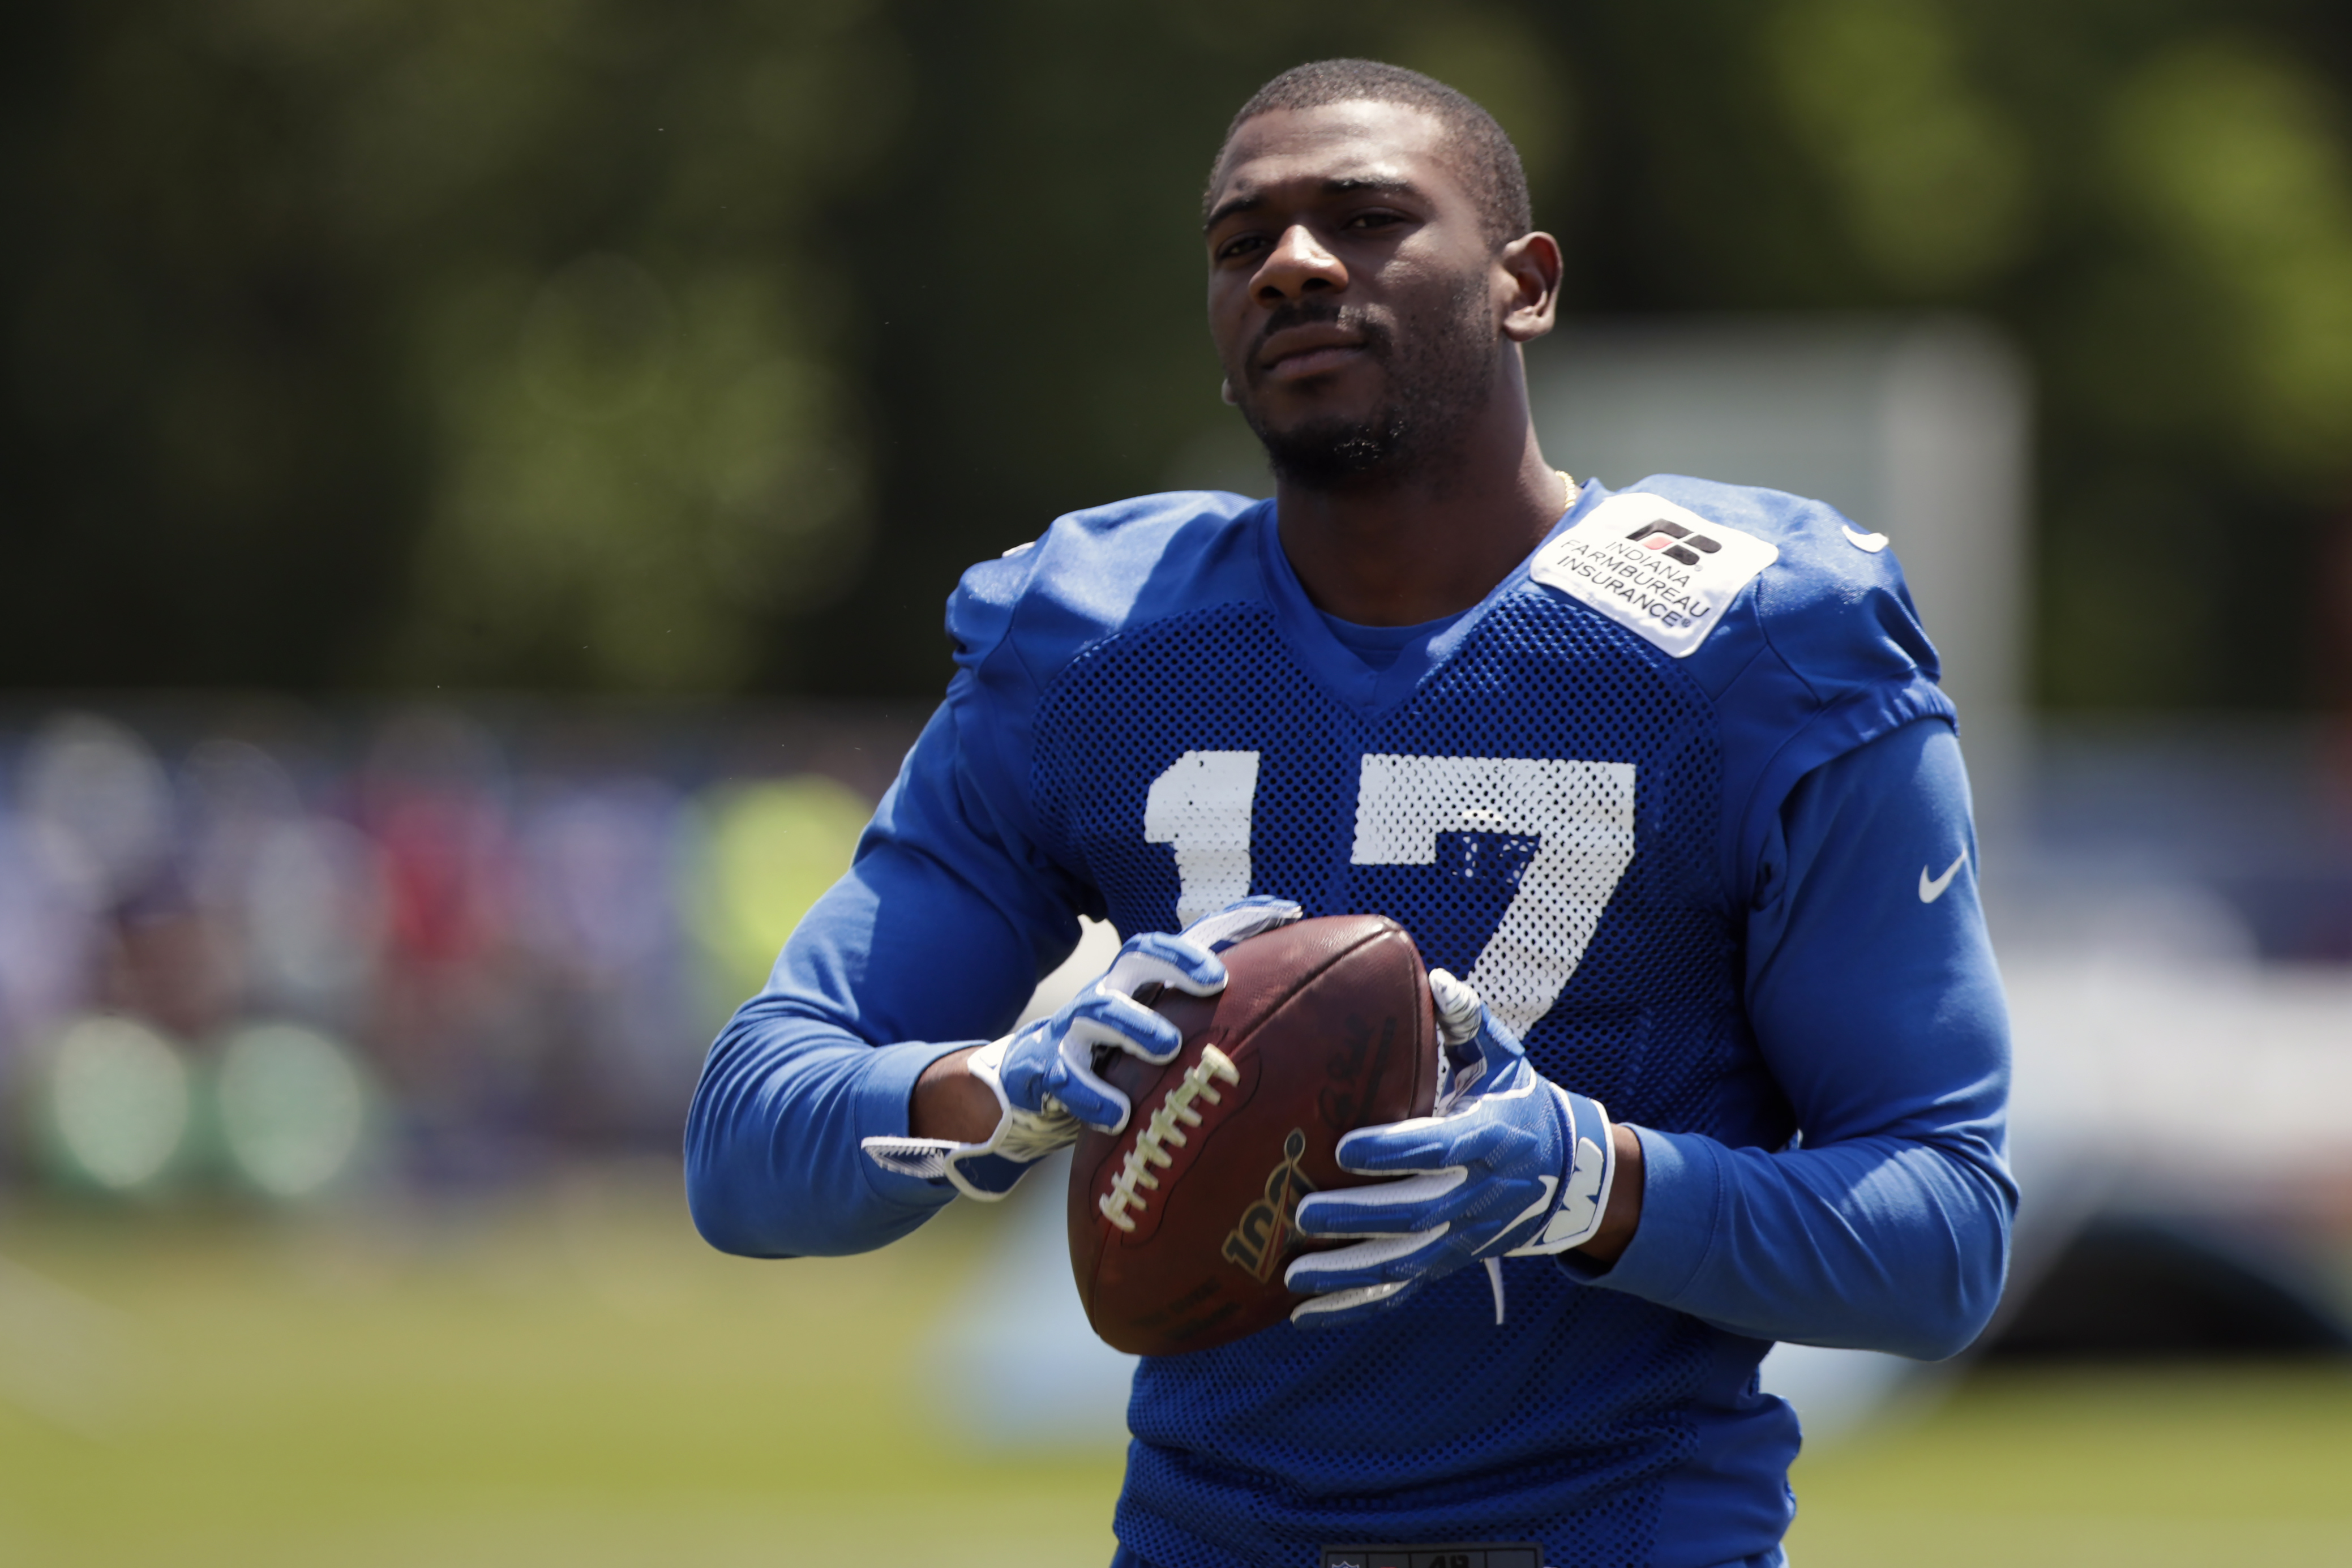 Packers sign former Colts wide receiver Devin Funchess